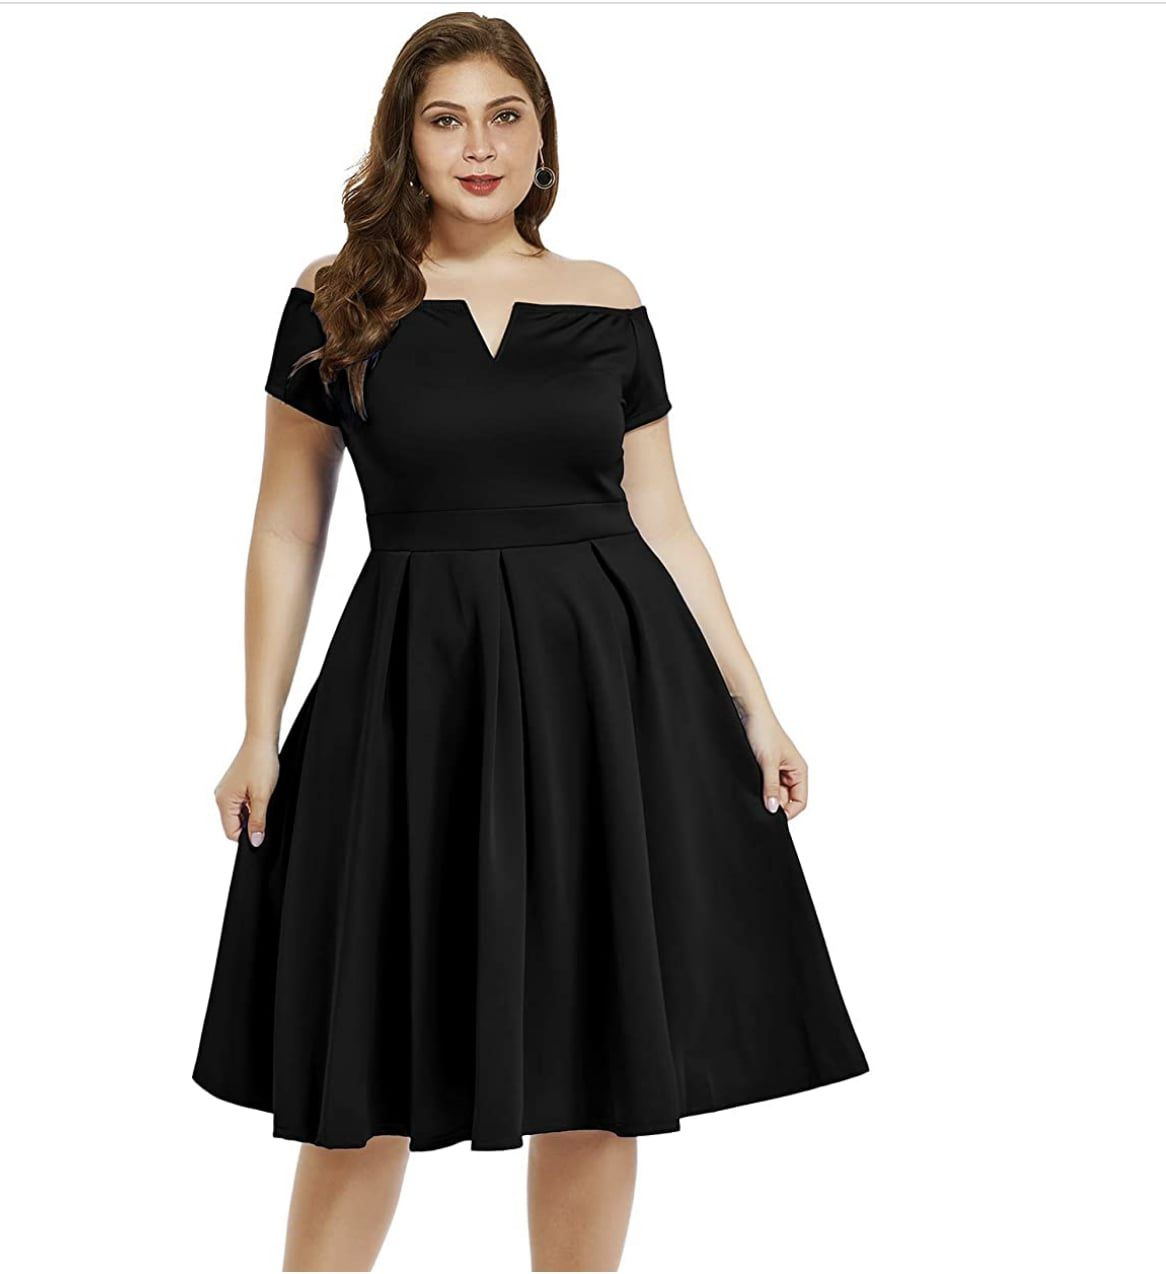 Style B07BPXV9LM Lalagen Black Size 12 Flare Sweetheart Tall Height Wedding Guest Cocktail Dress on Queenly